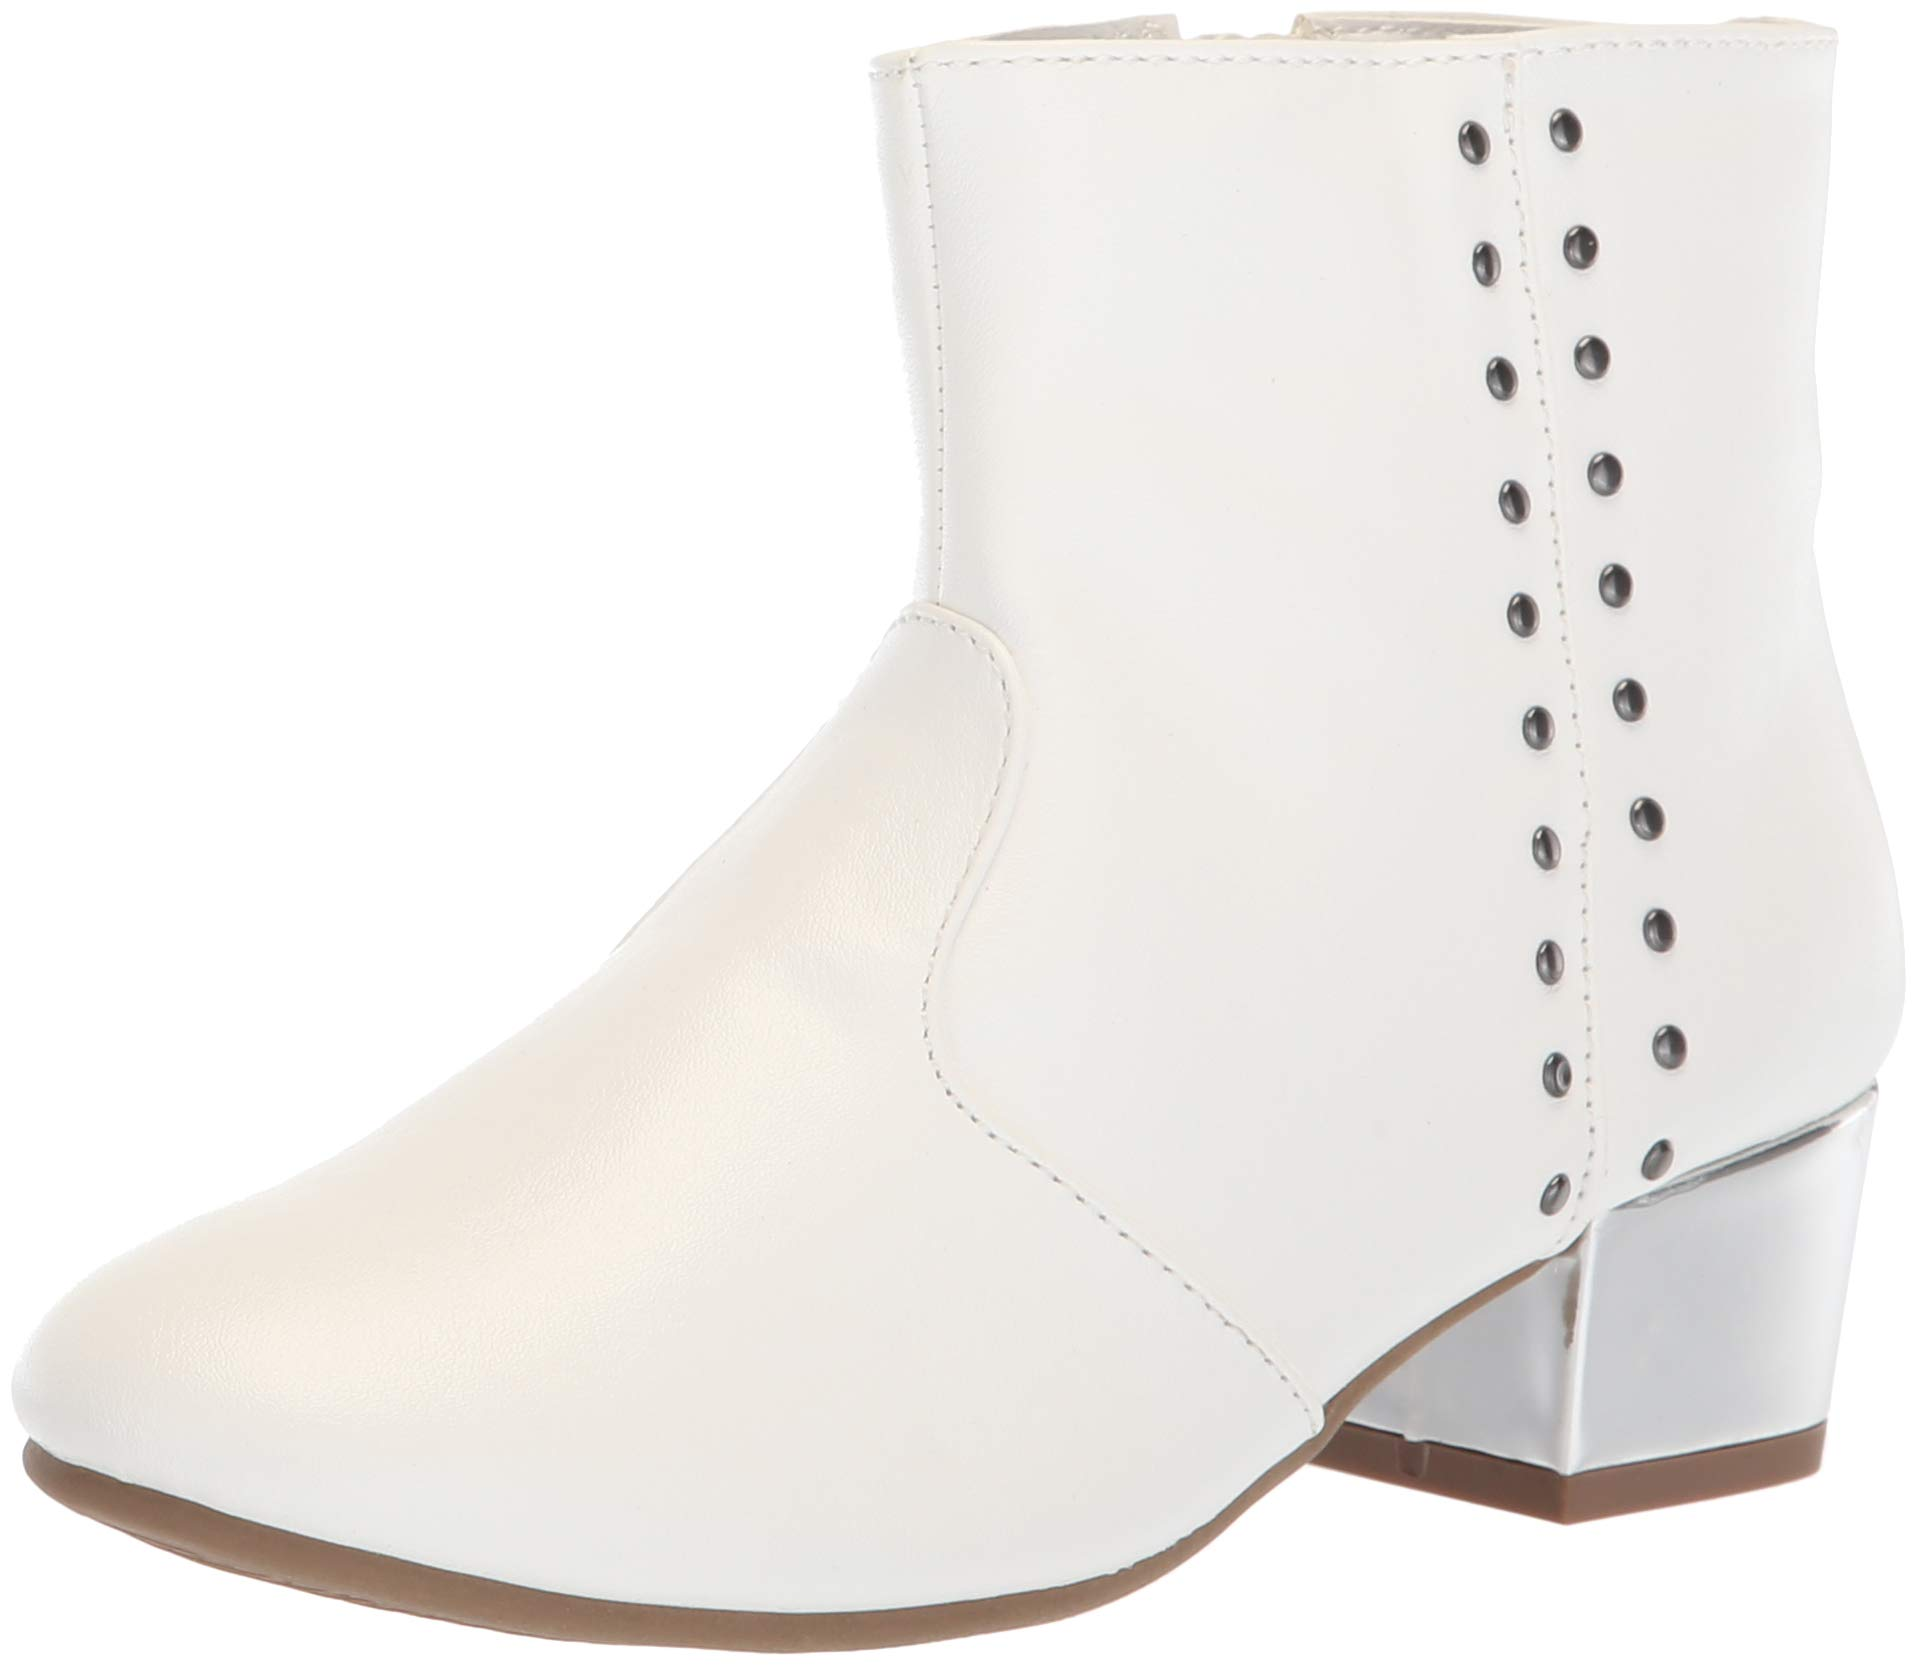 The Children's Place Girls' Bootie Fashion Boot, White, Youth 3 Child US Little Kid by The Children's Place (Image #1)